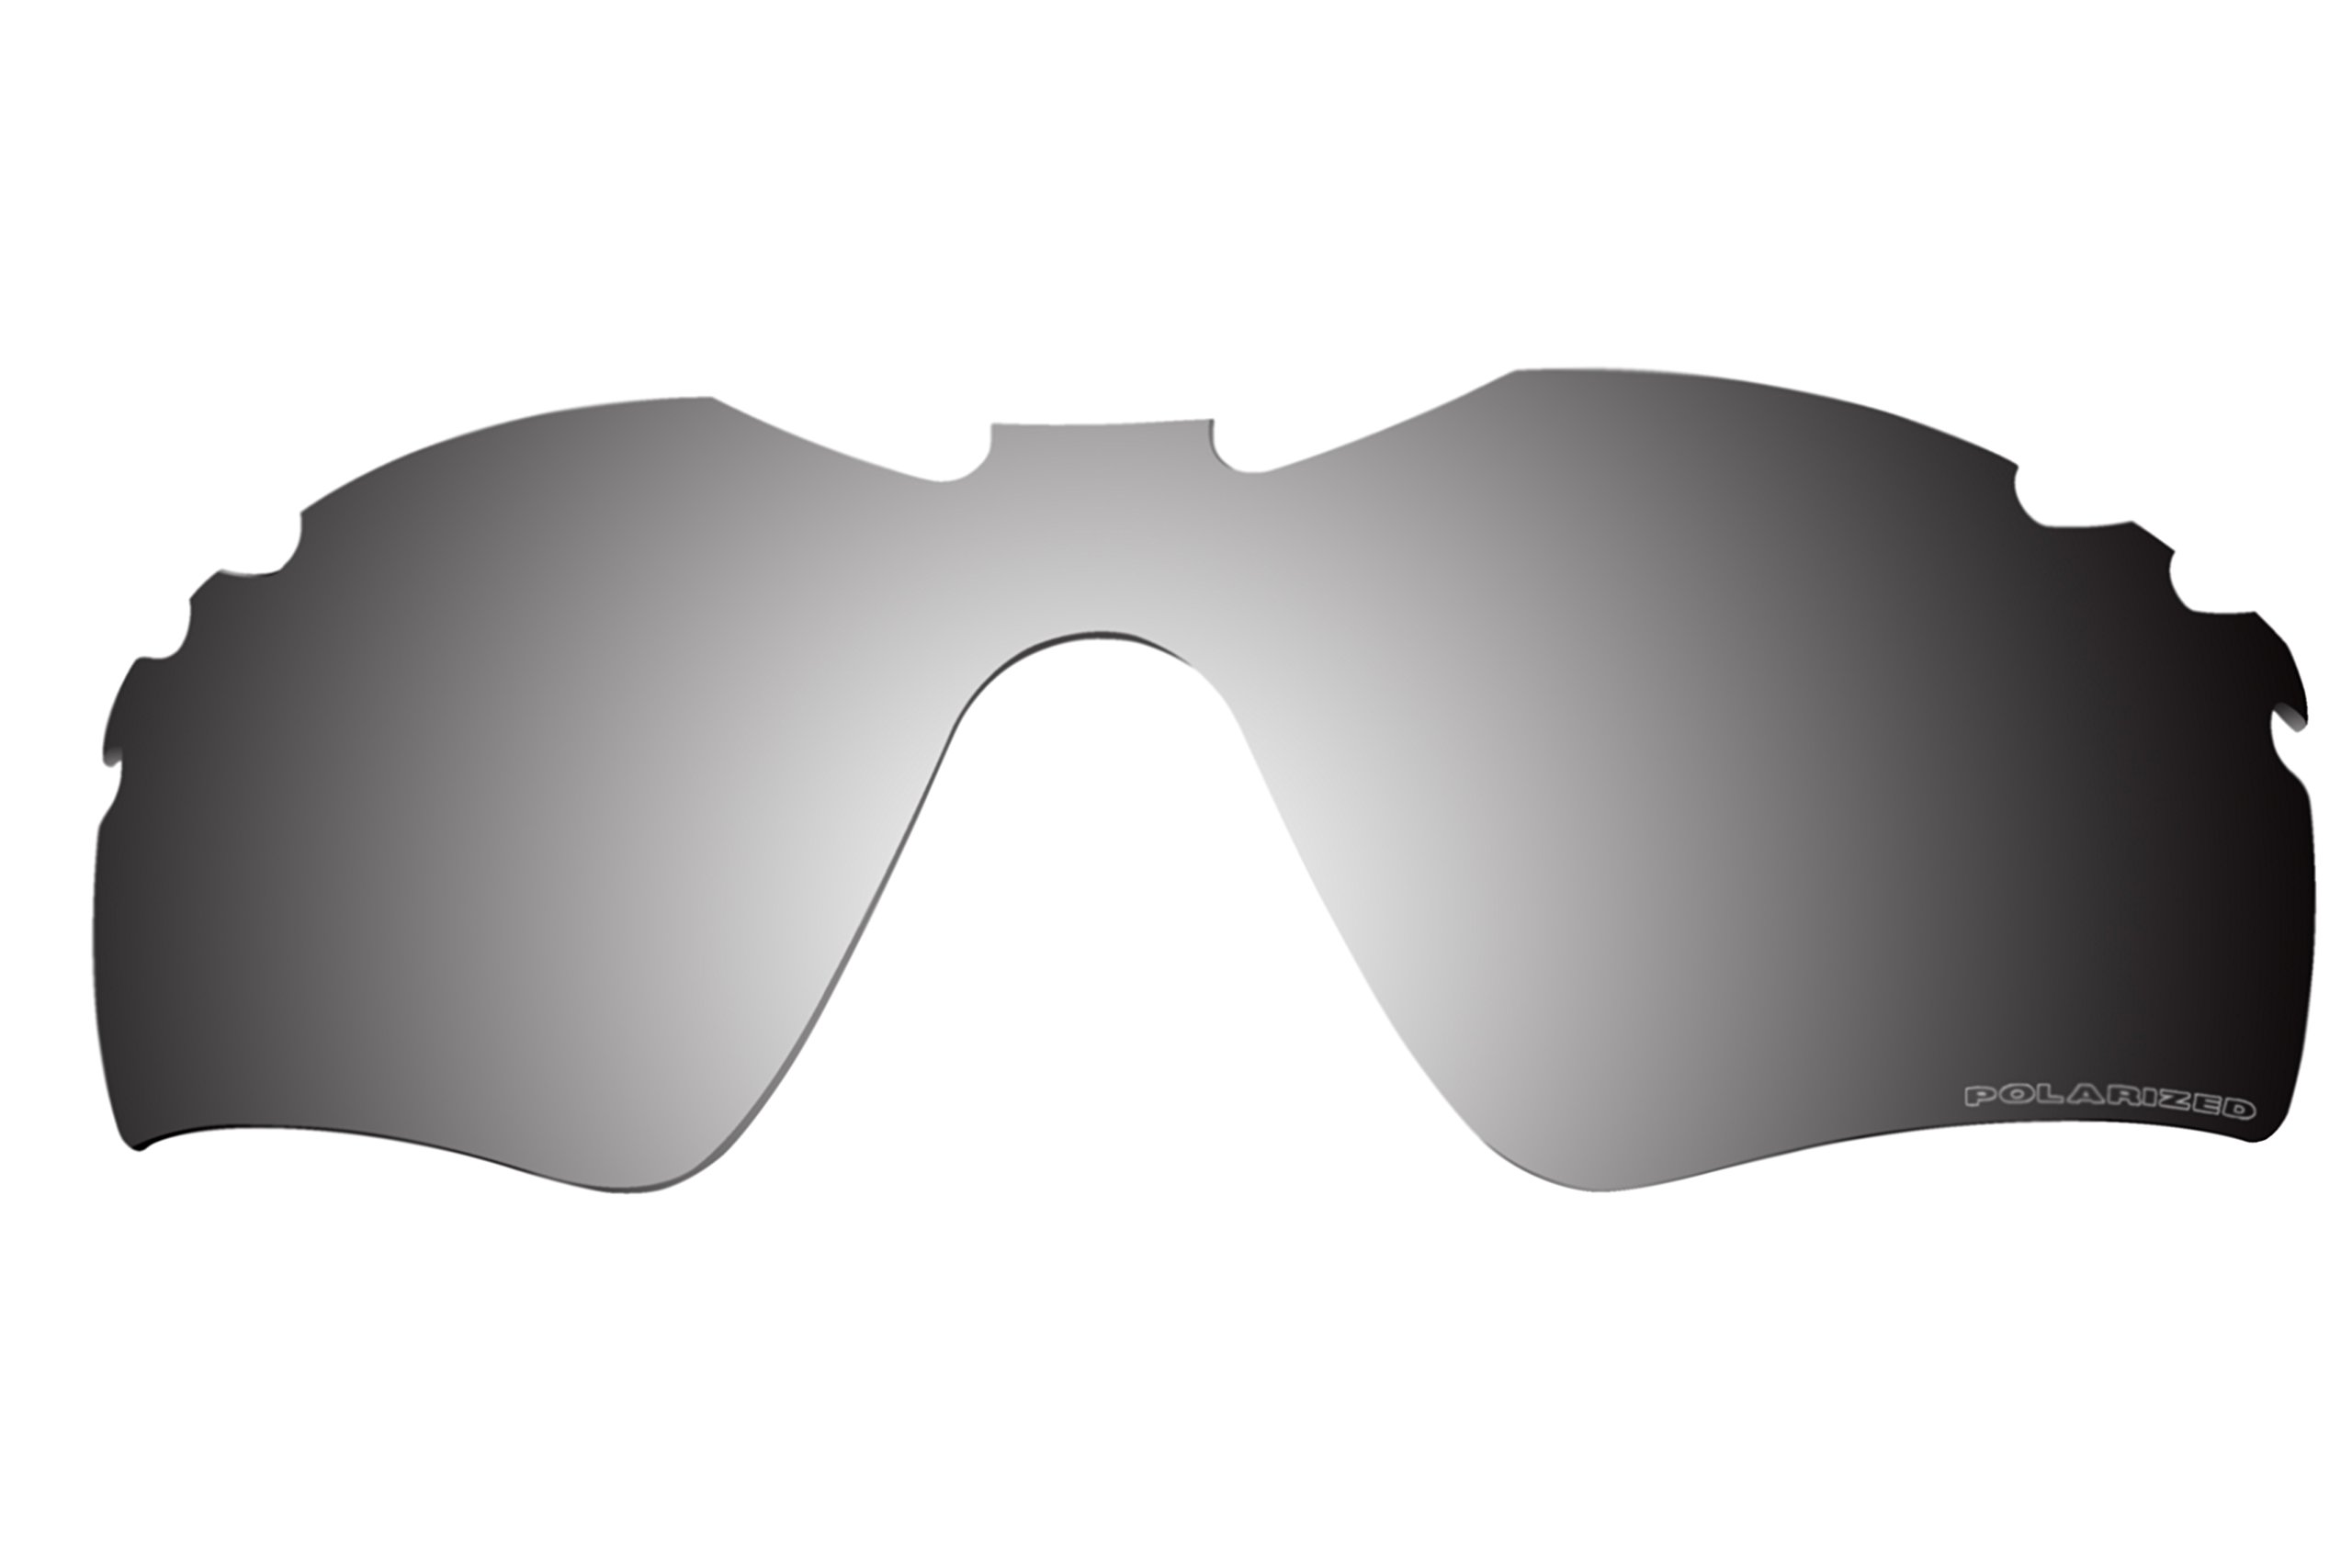 Polarized Lenses Replacement for Oakley Radar Path Vented Sunglasses - 6 Options Available (Black iridium) by BVANQ